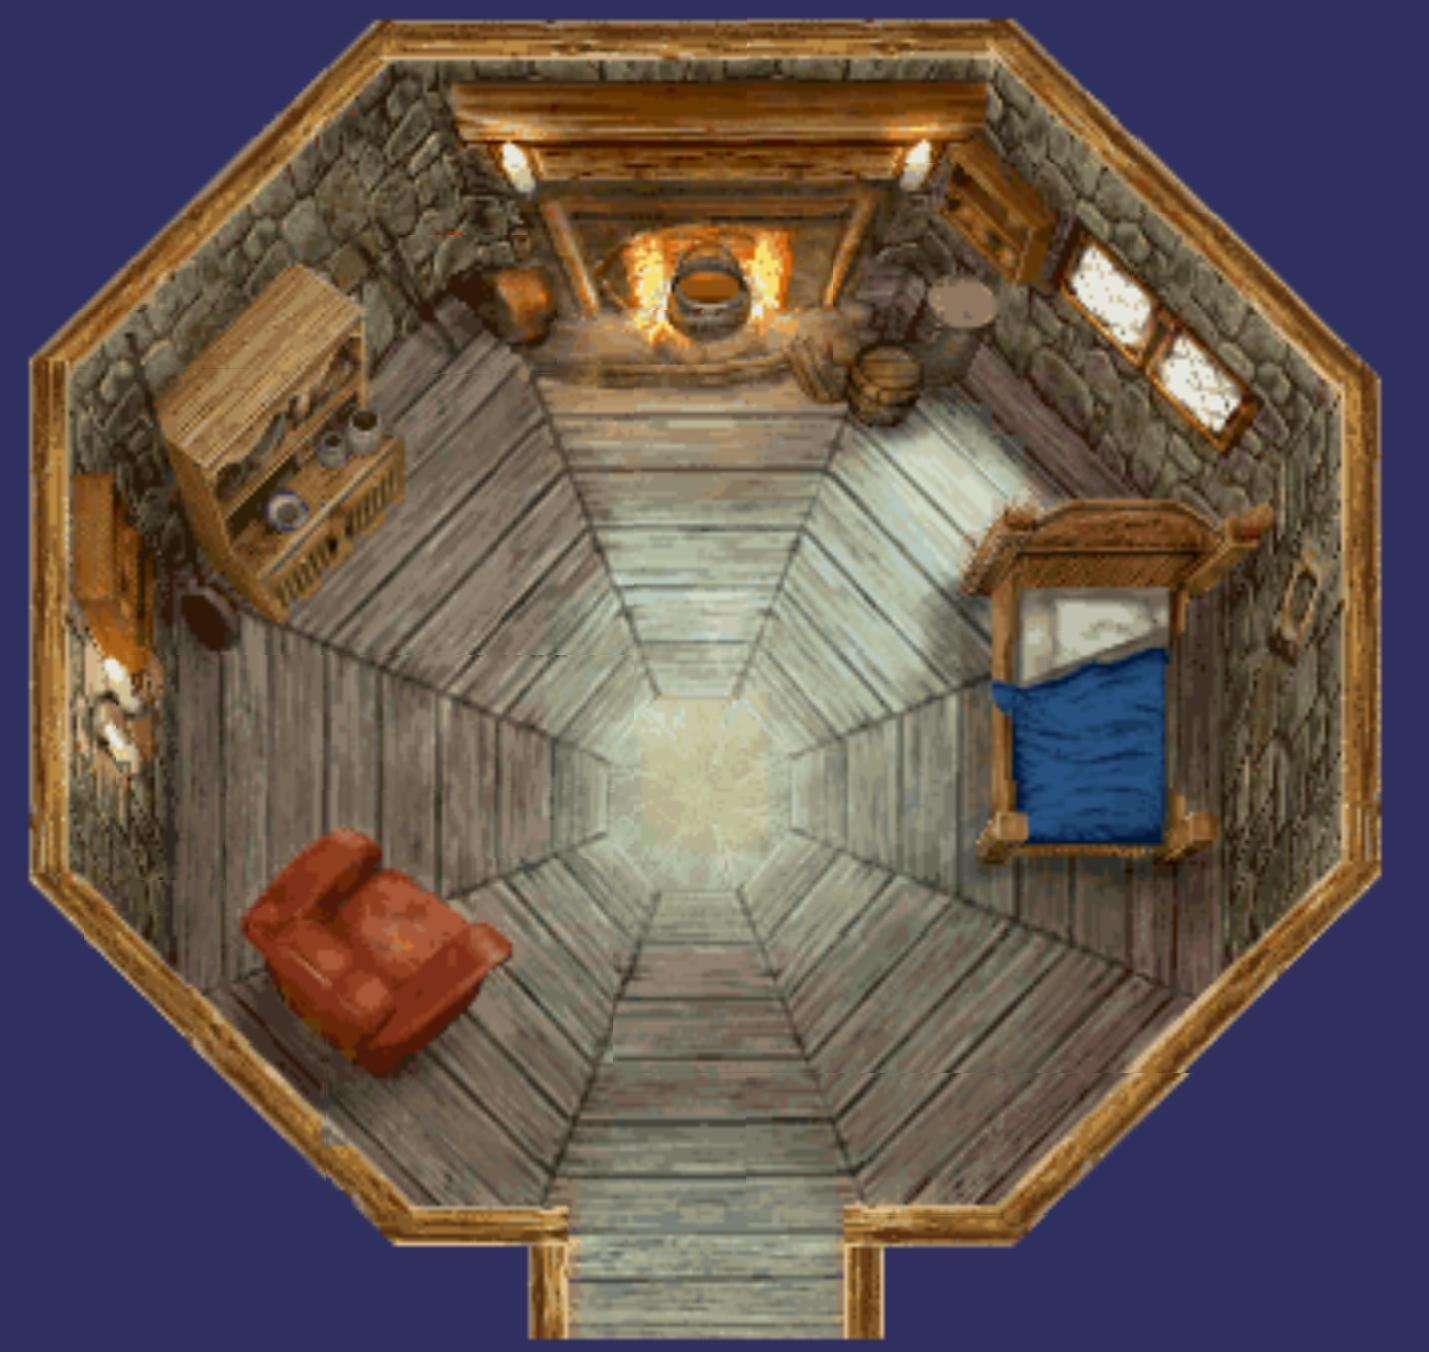 Bpaprika Rubeus Hagrid S House: what house was hagrid in